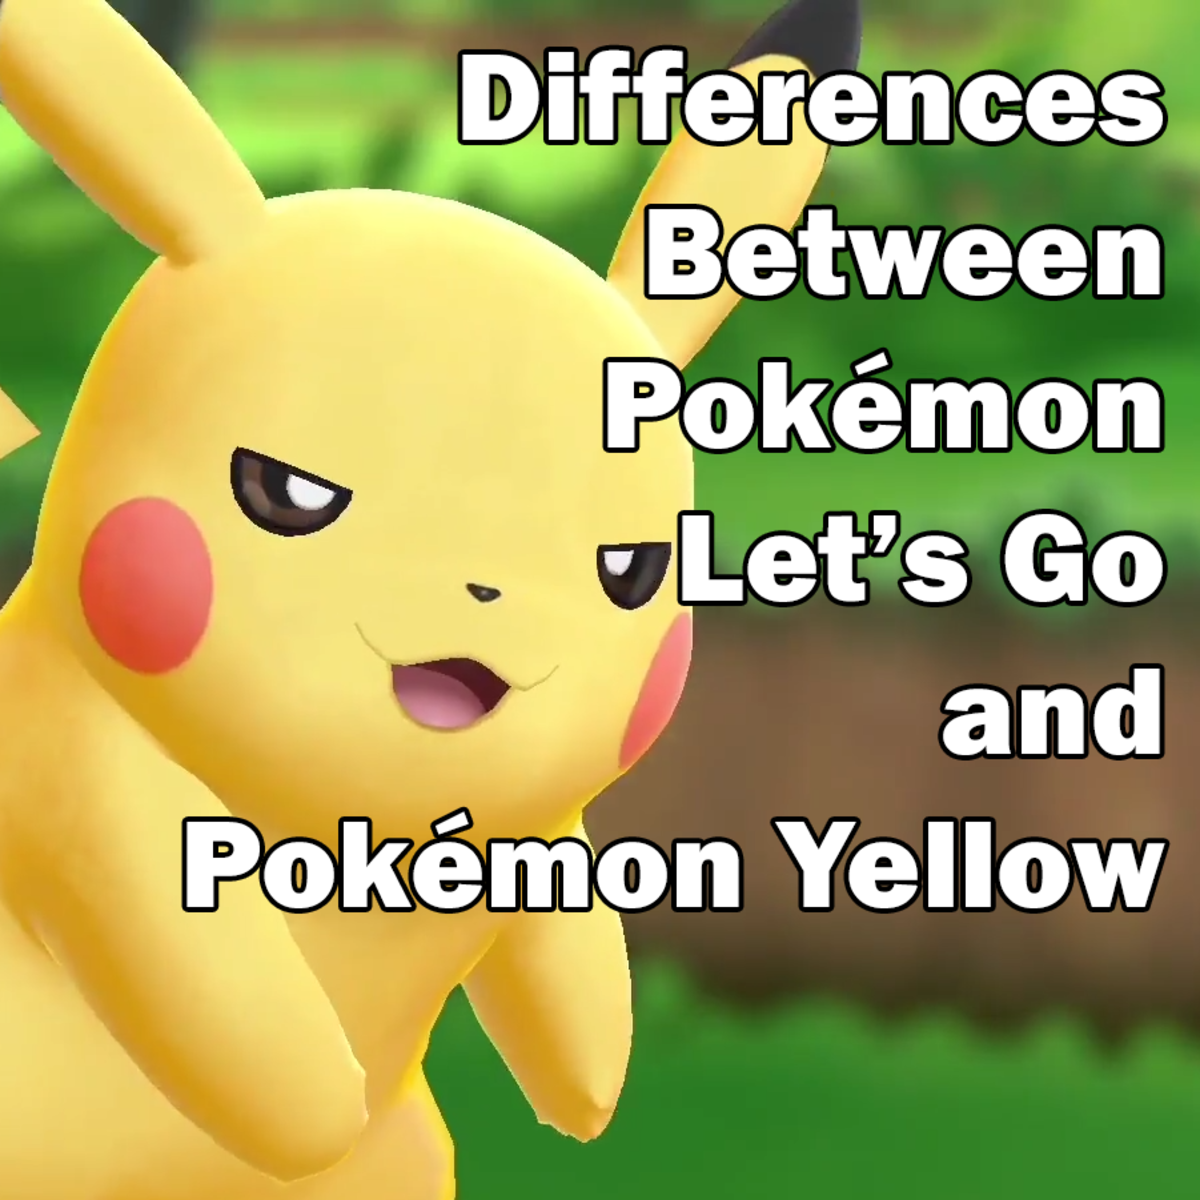 What are the Differences Between Pokémon Let's Go and Pokémon Yellow?